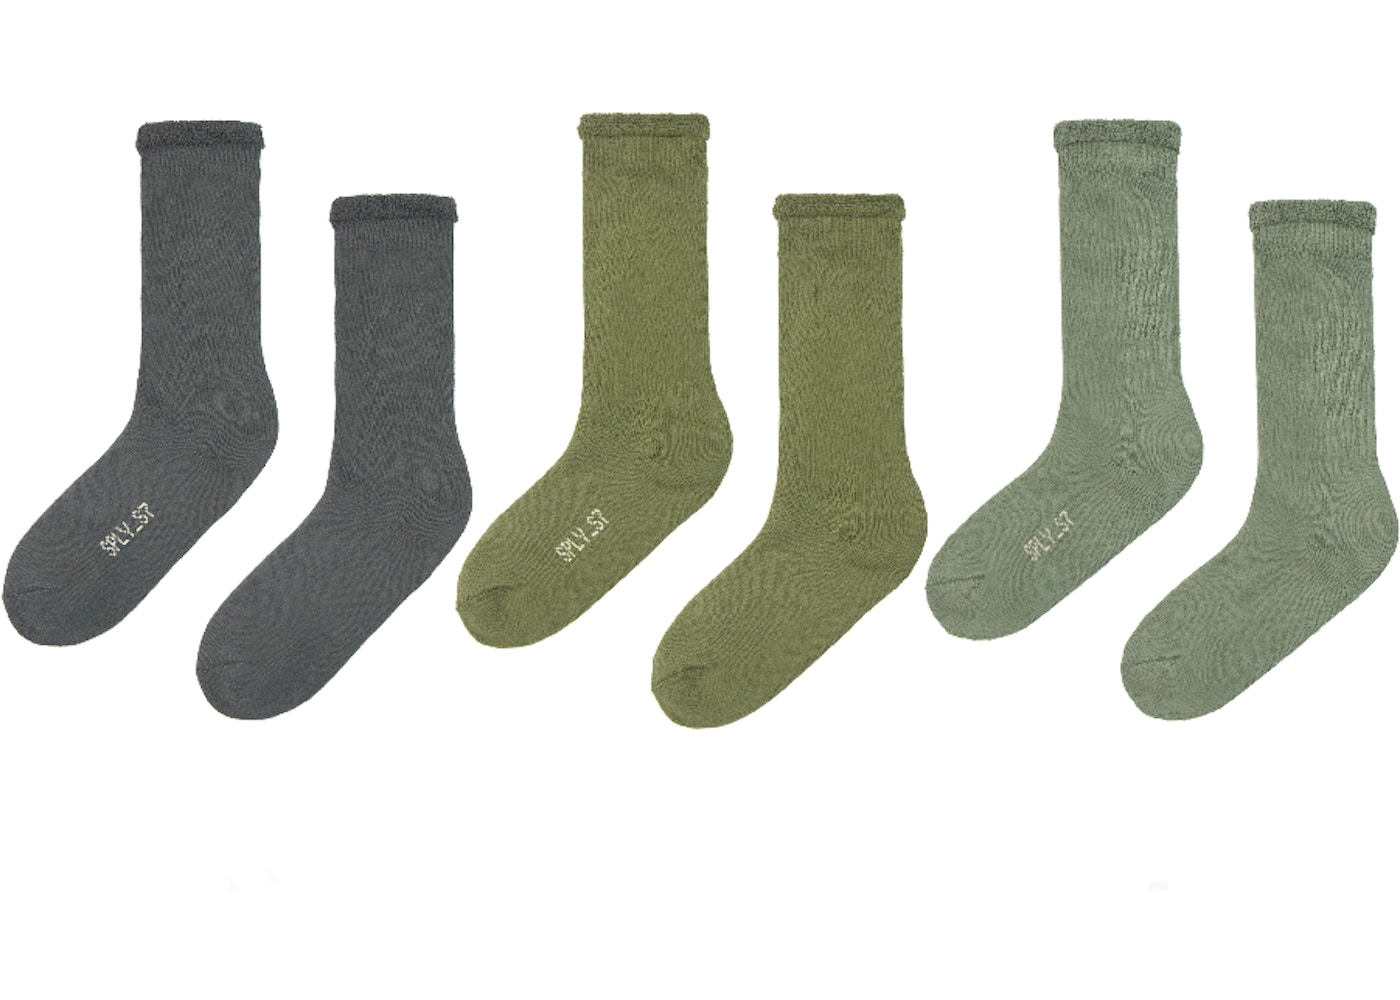 84d45eac00c34 Yeezy Bouclette Socks (3 Pack) Color Three - FW18